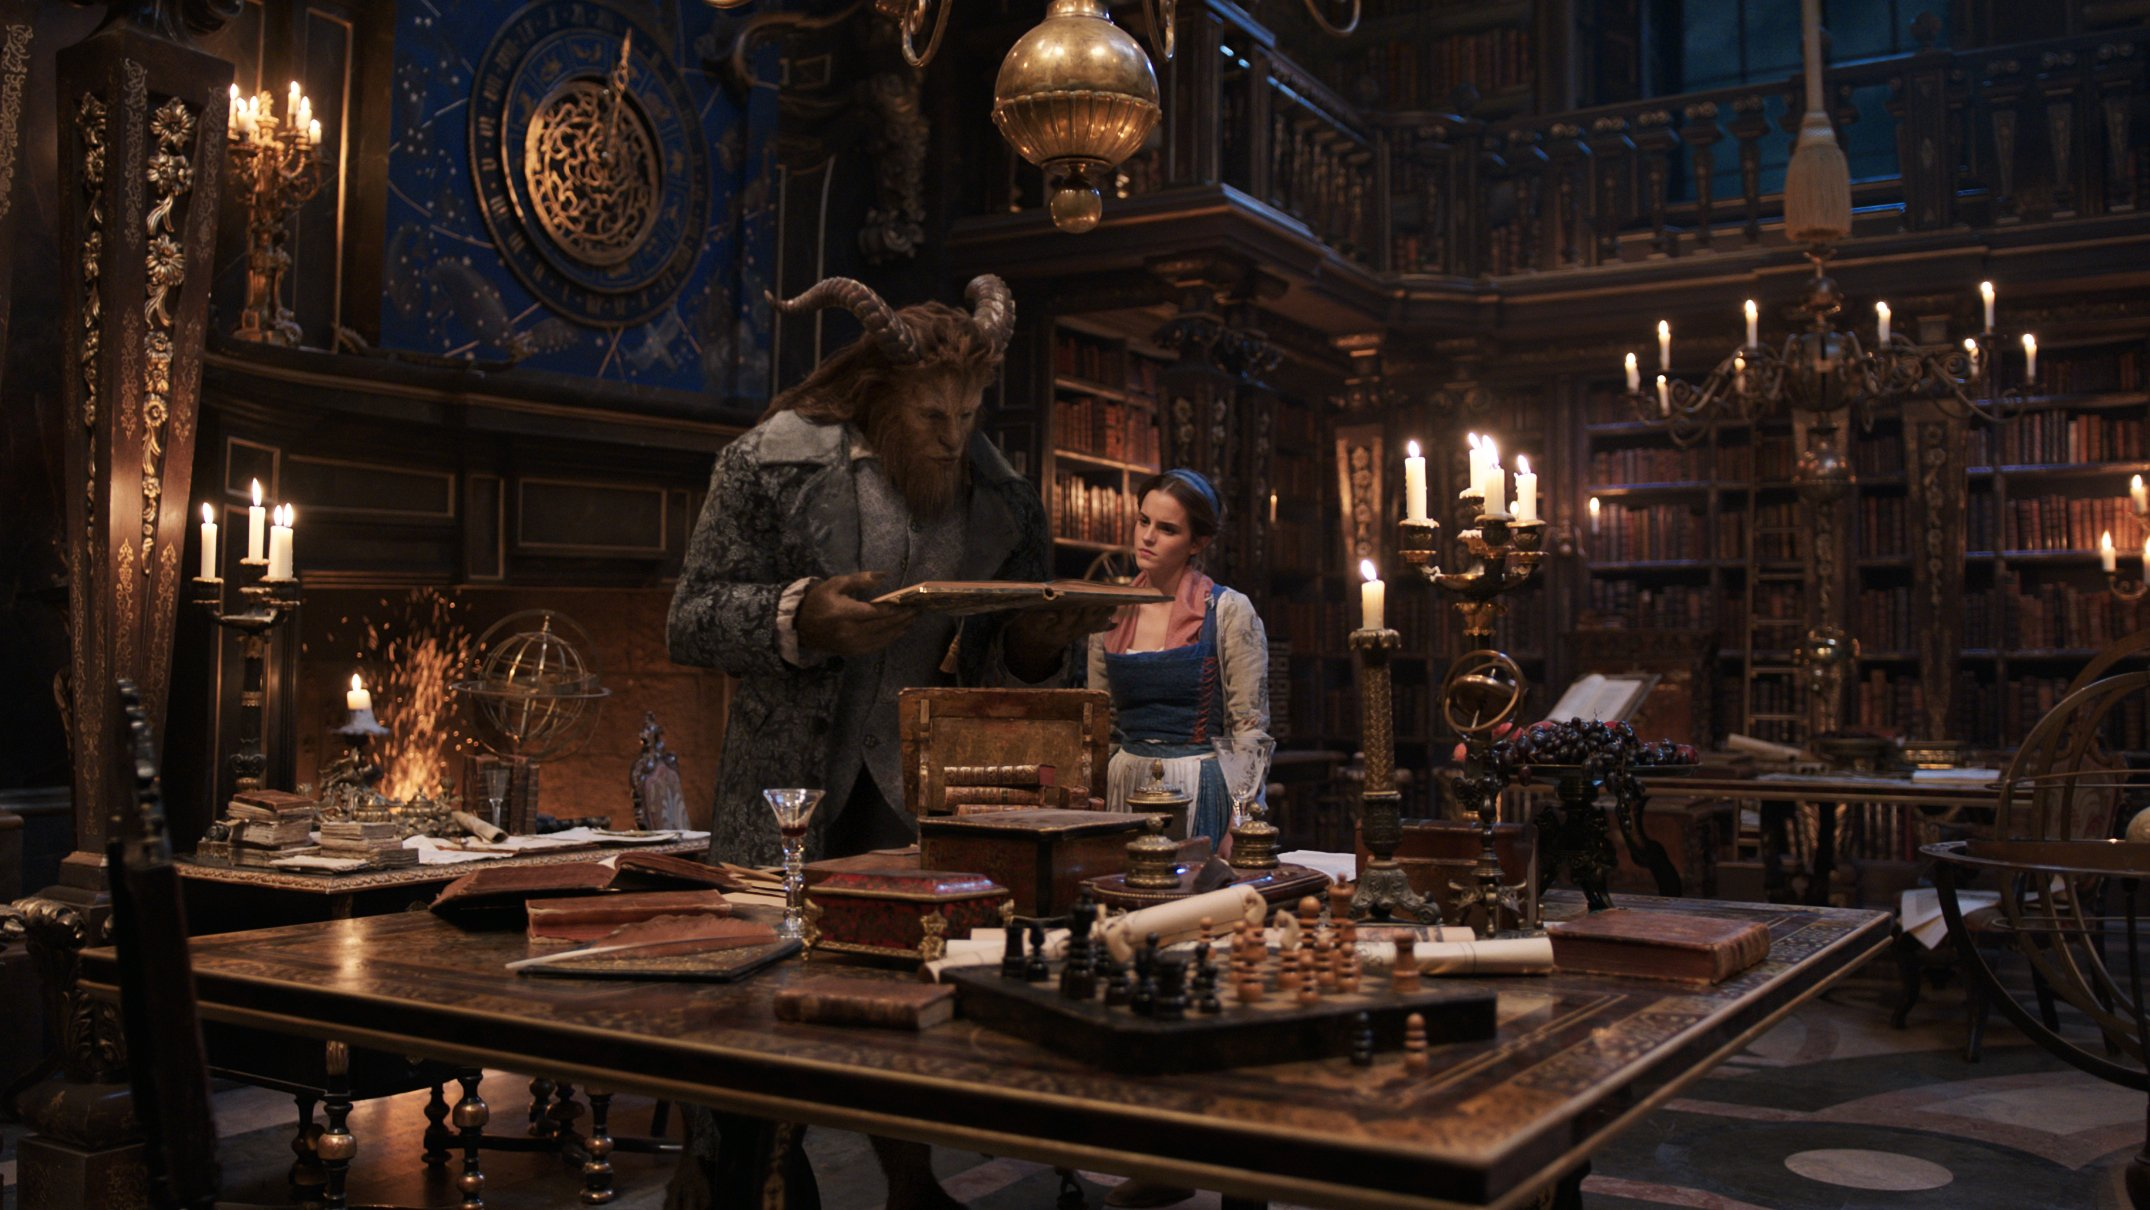 Brand New Images from Disney's Beauty and the Beast